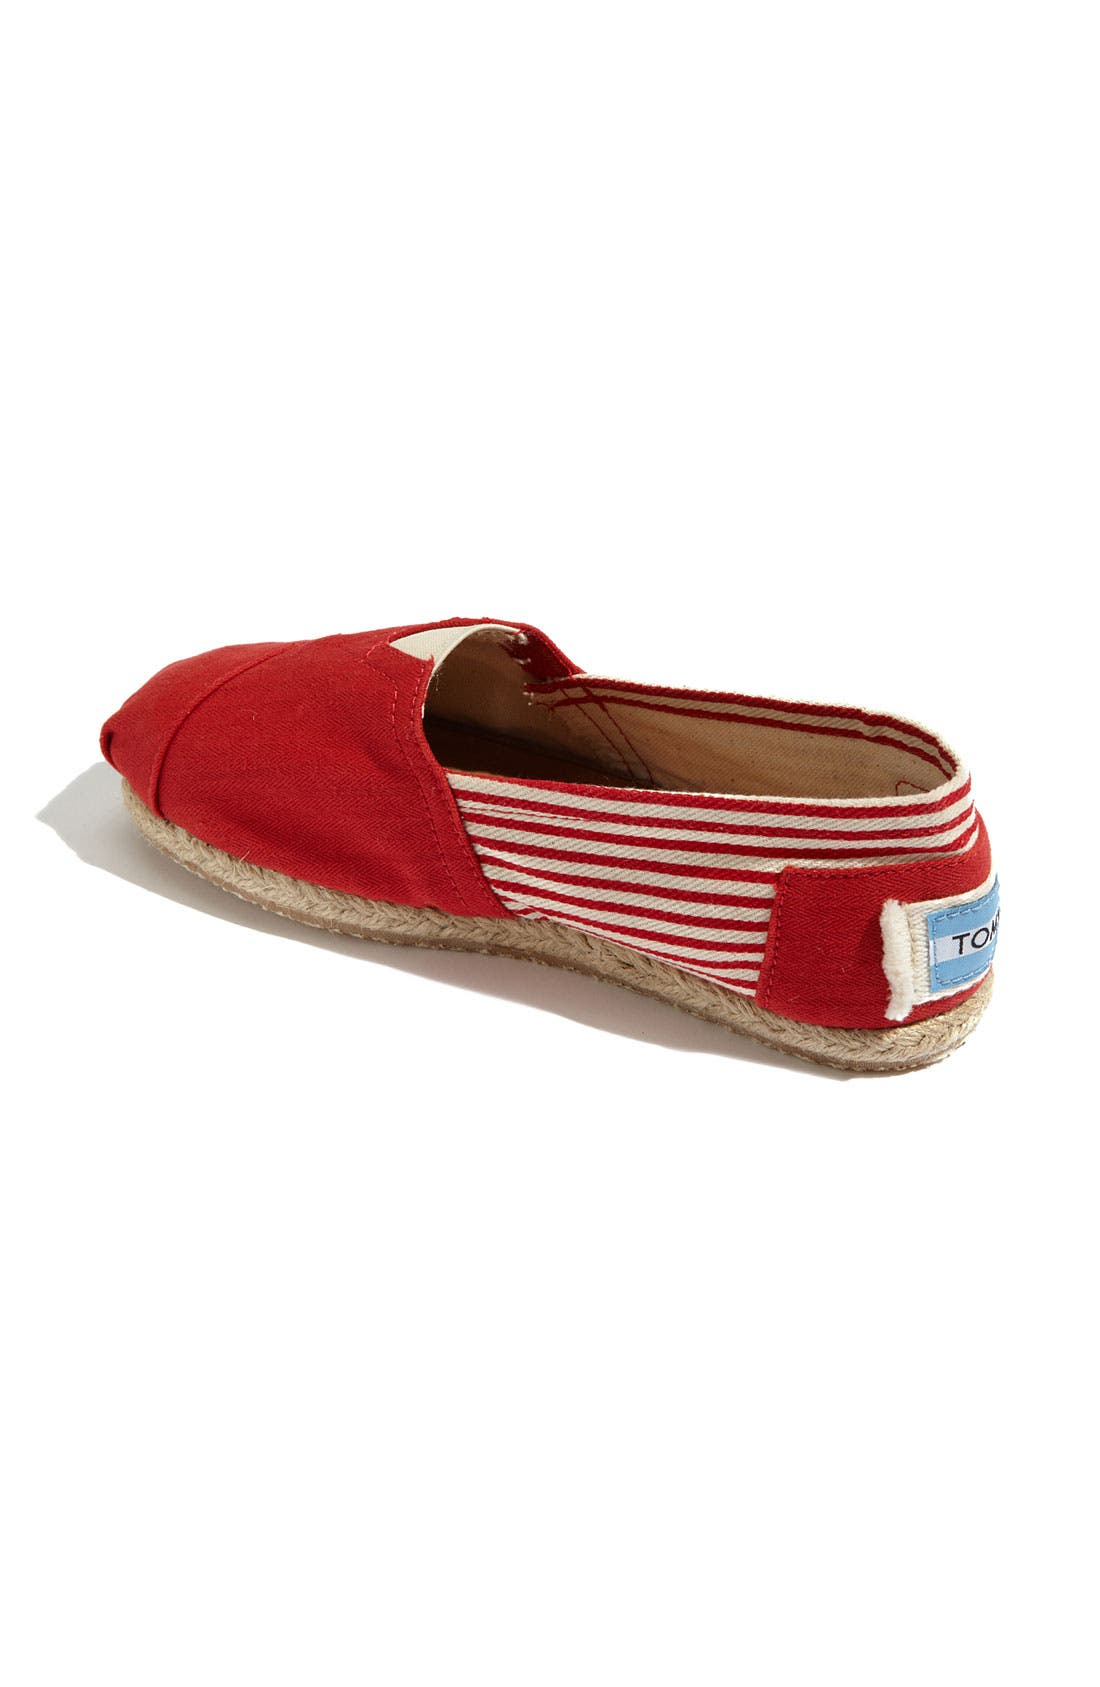 Alternate Image 2  - TOMS 'Classic - University' Slip-On (Women)